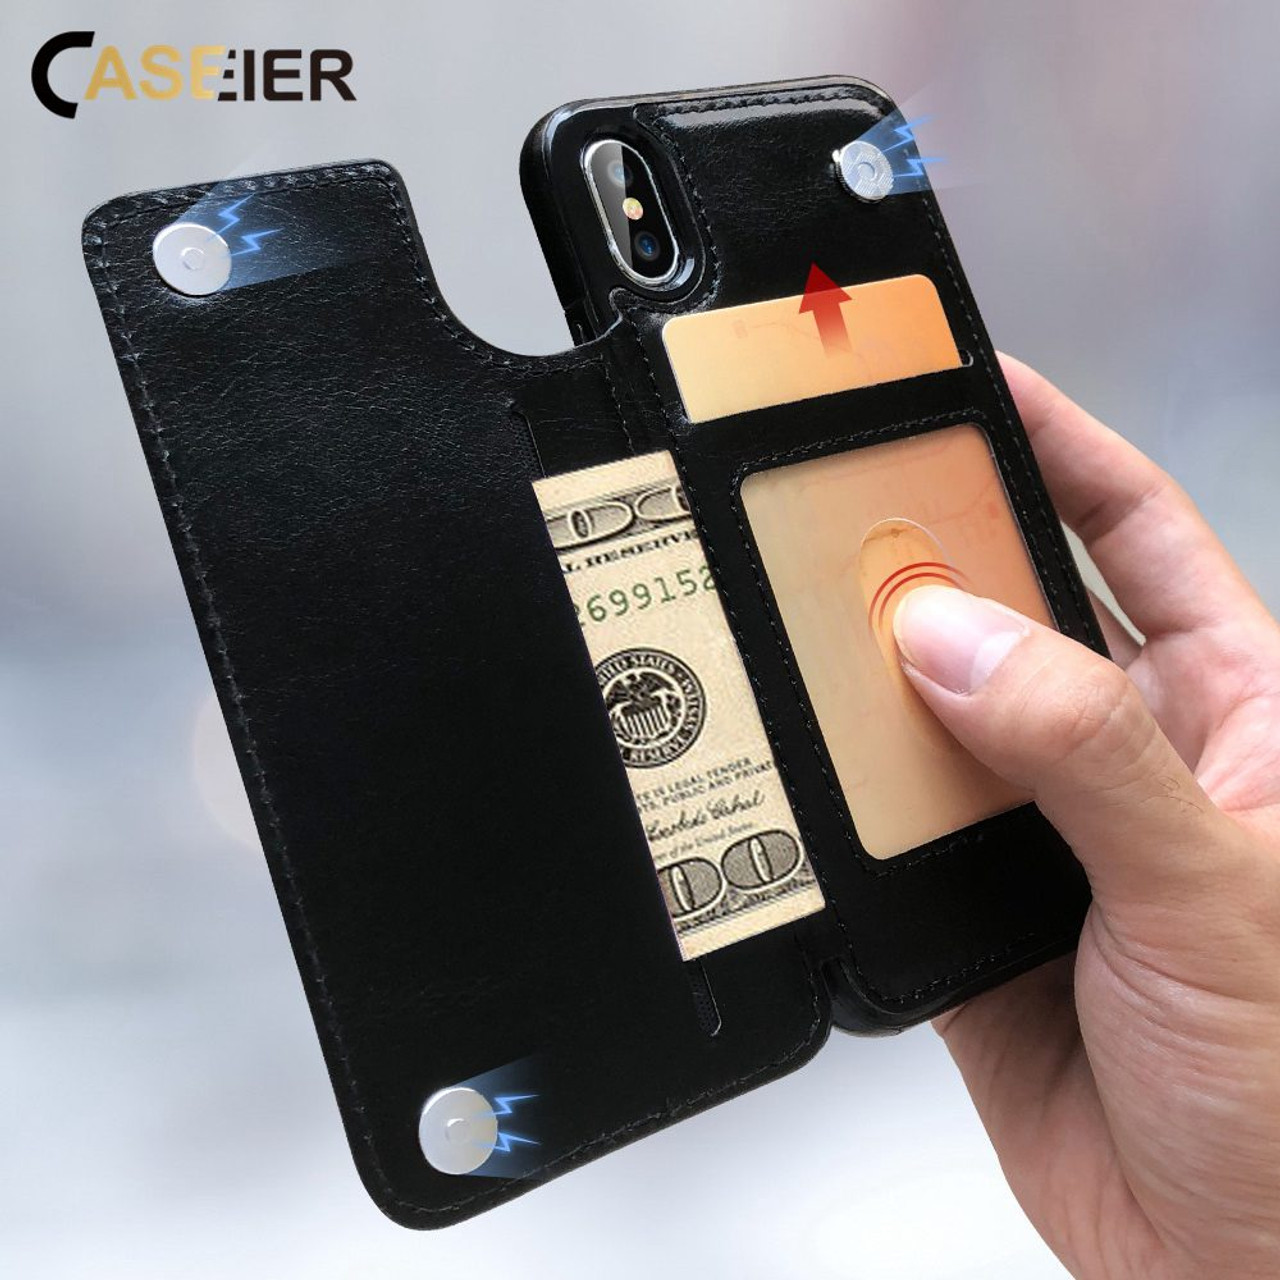 72e43712ec7 CASEIER PU Leather Phone Case For iPhone X XR XS Max 8 7 6s 6 5s 5 ...